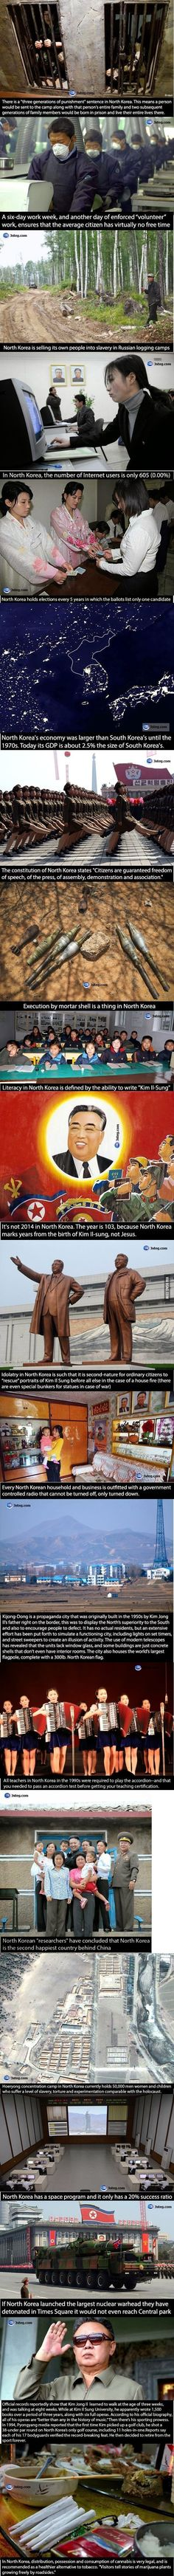 The more you know...if this is true, then it's sad. No oil = no democracy for them..then again, going against north korea entails going against russia and china as well...